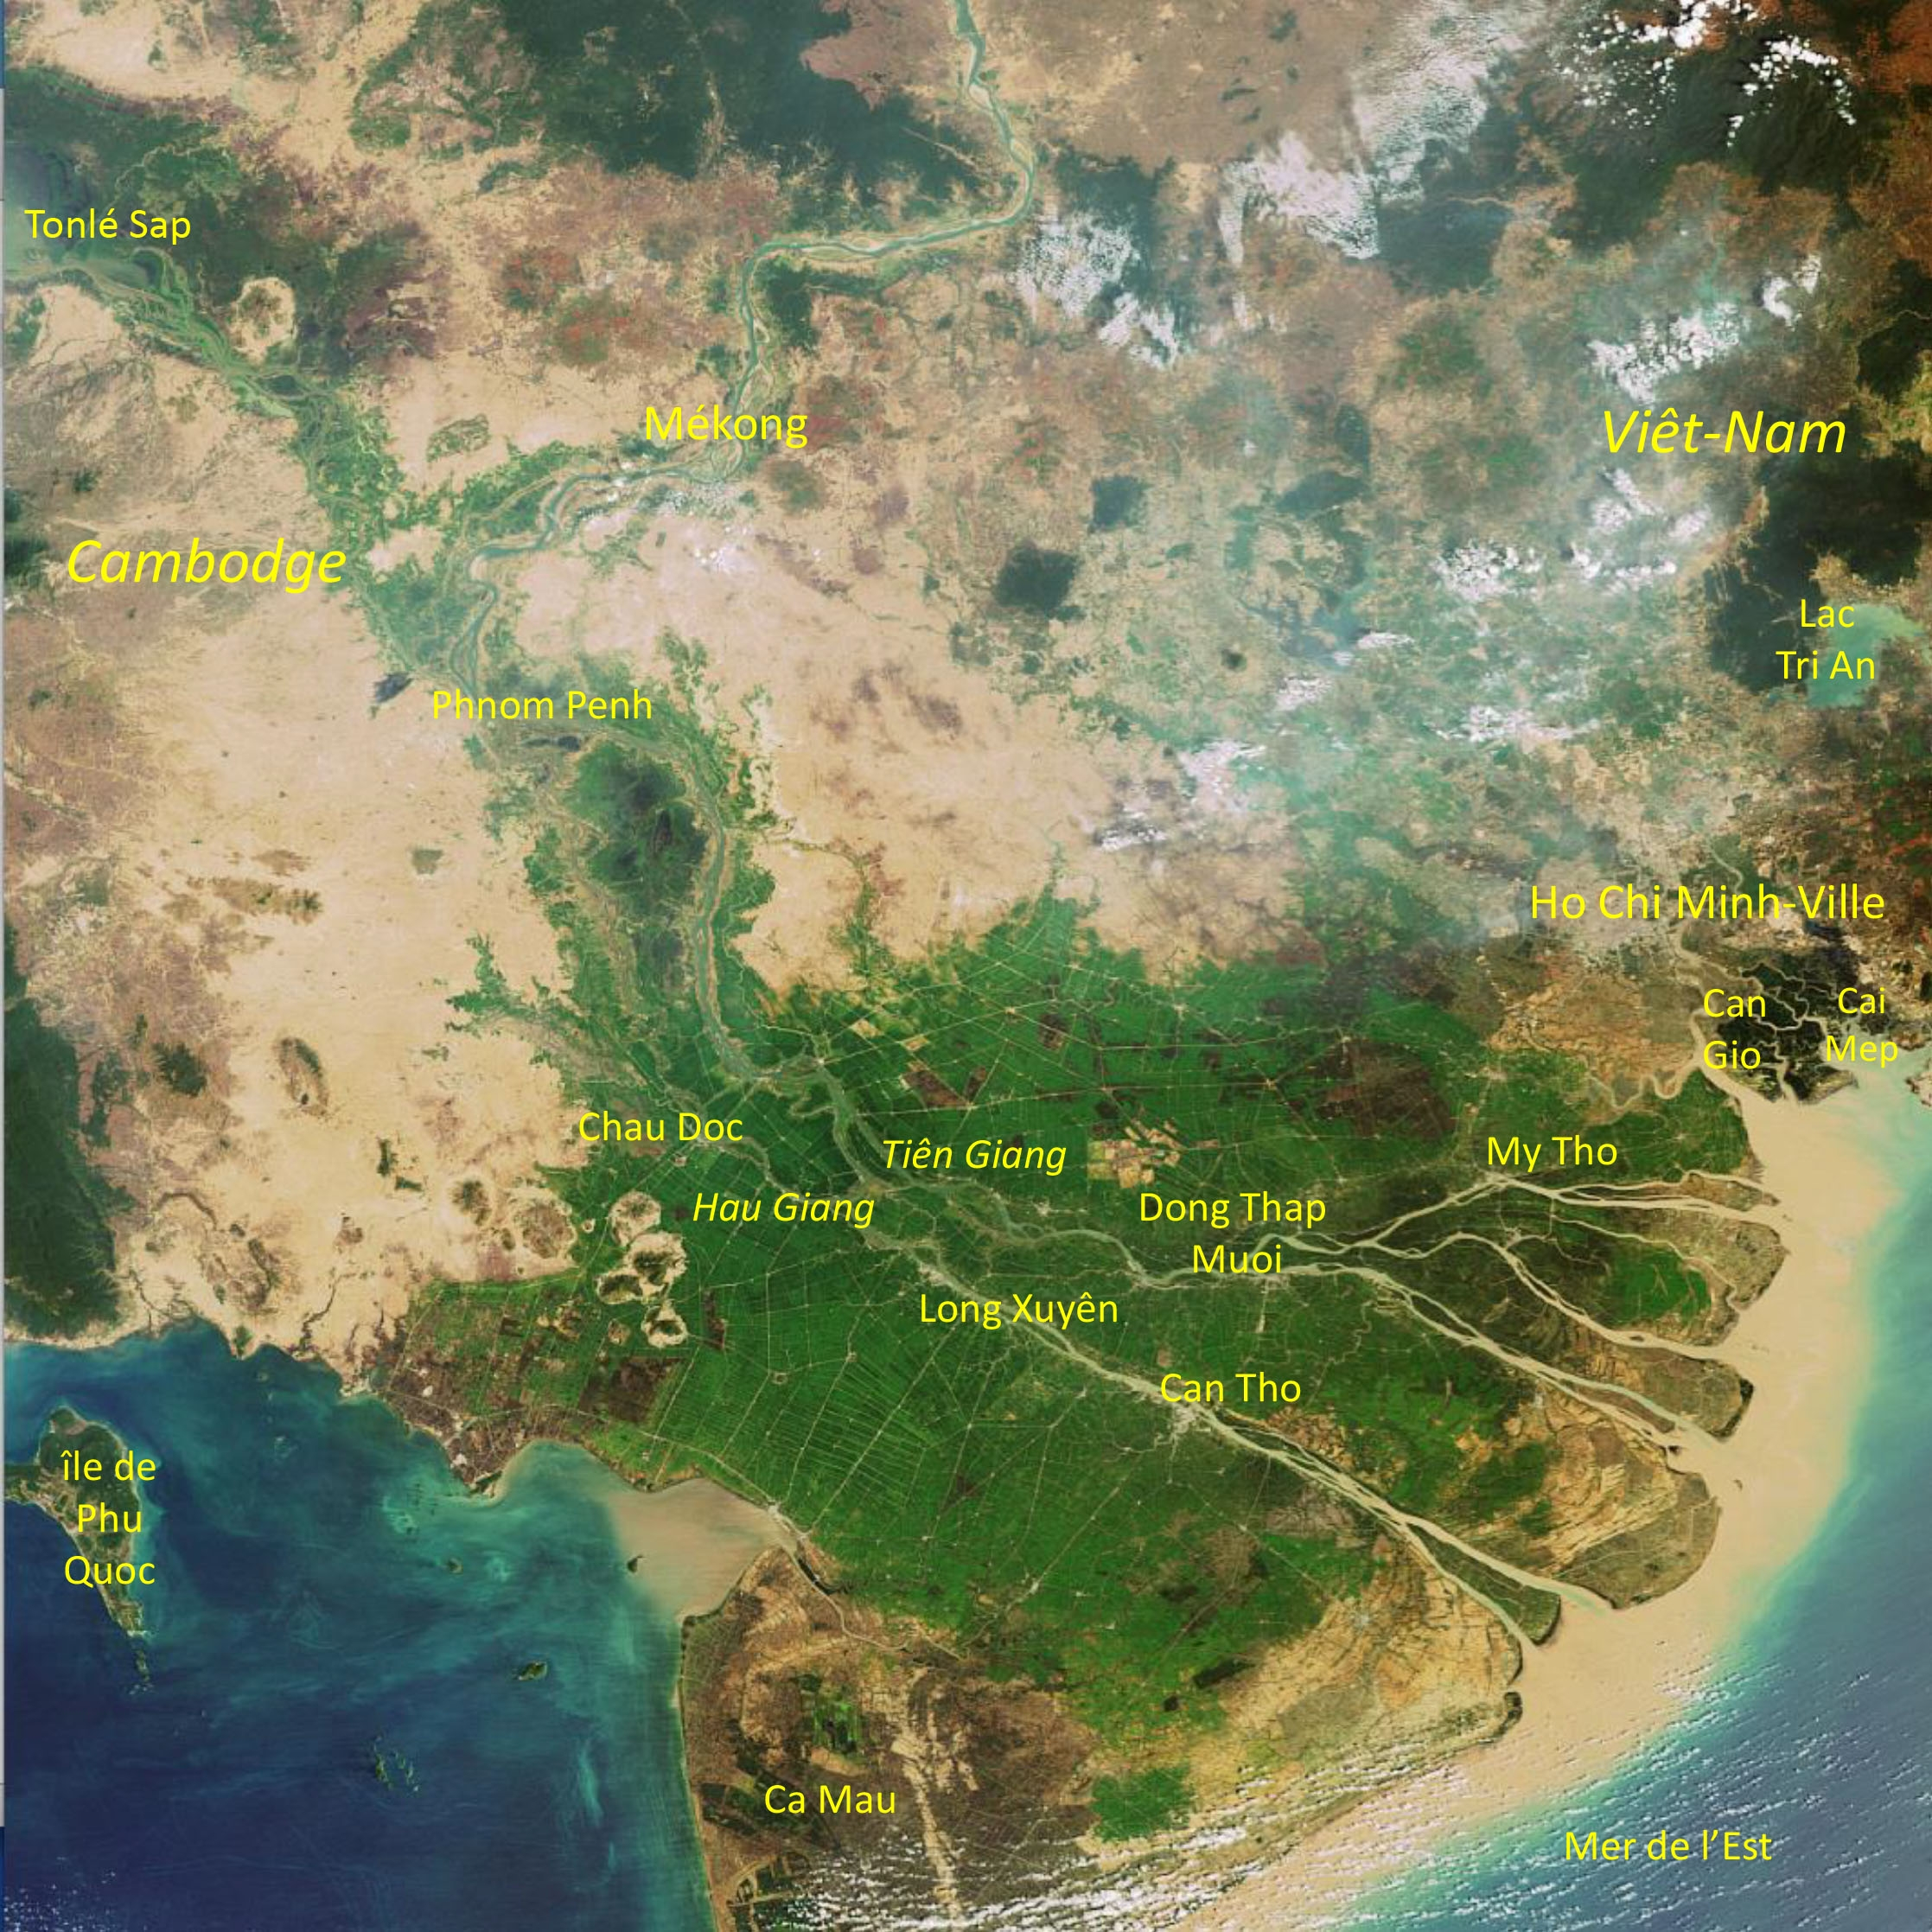 em_envisat_image_of_the_mekong_delta_in_vietnam_leg.jpg